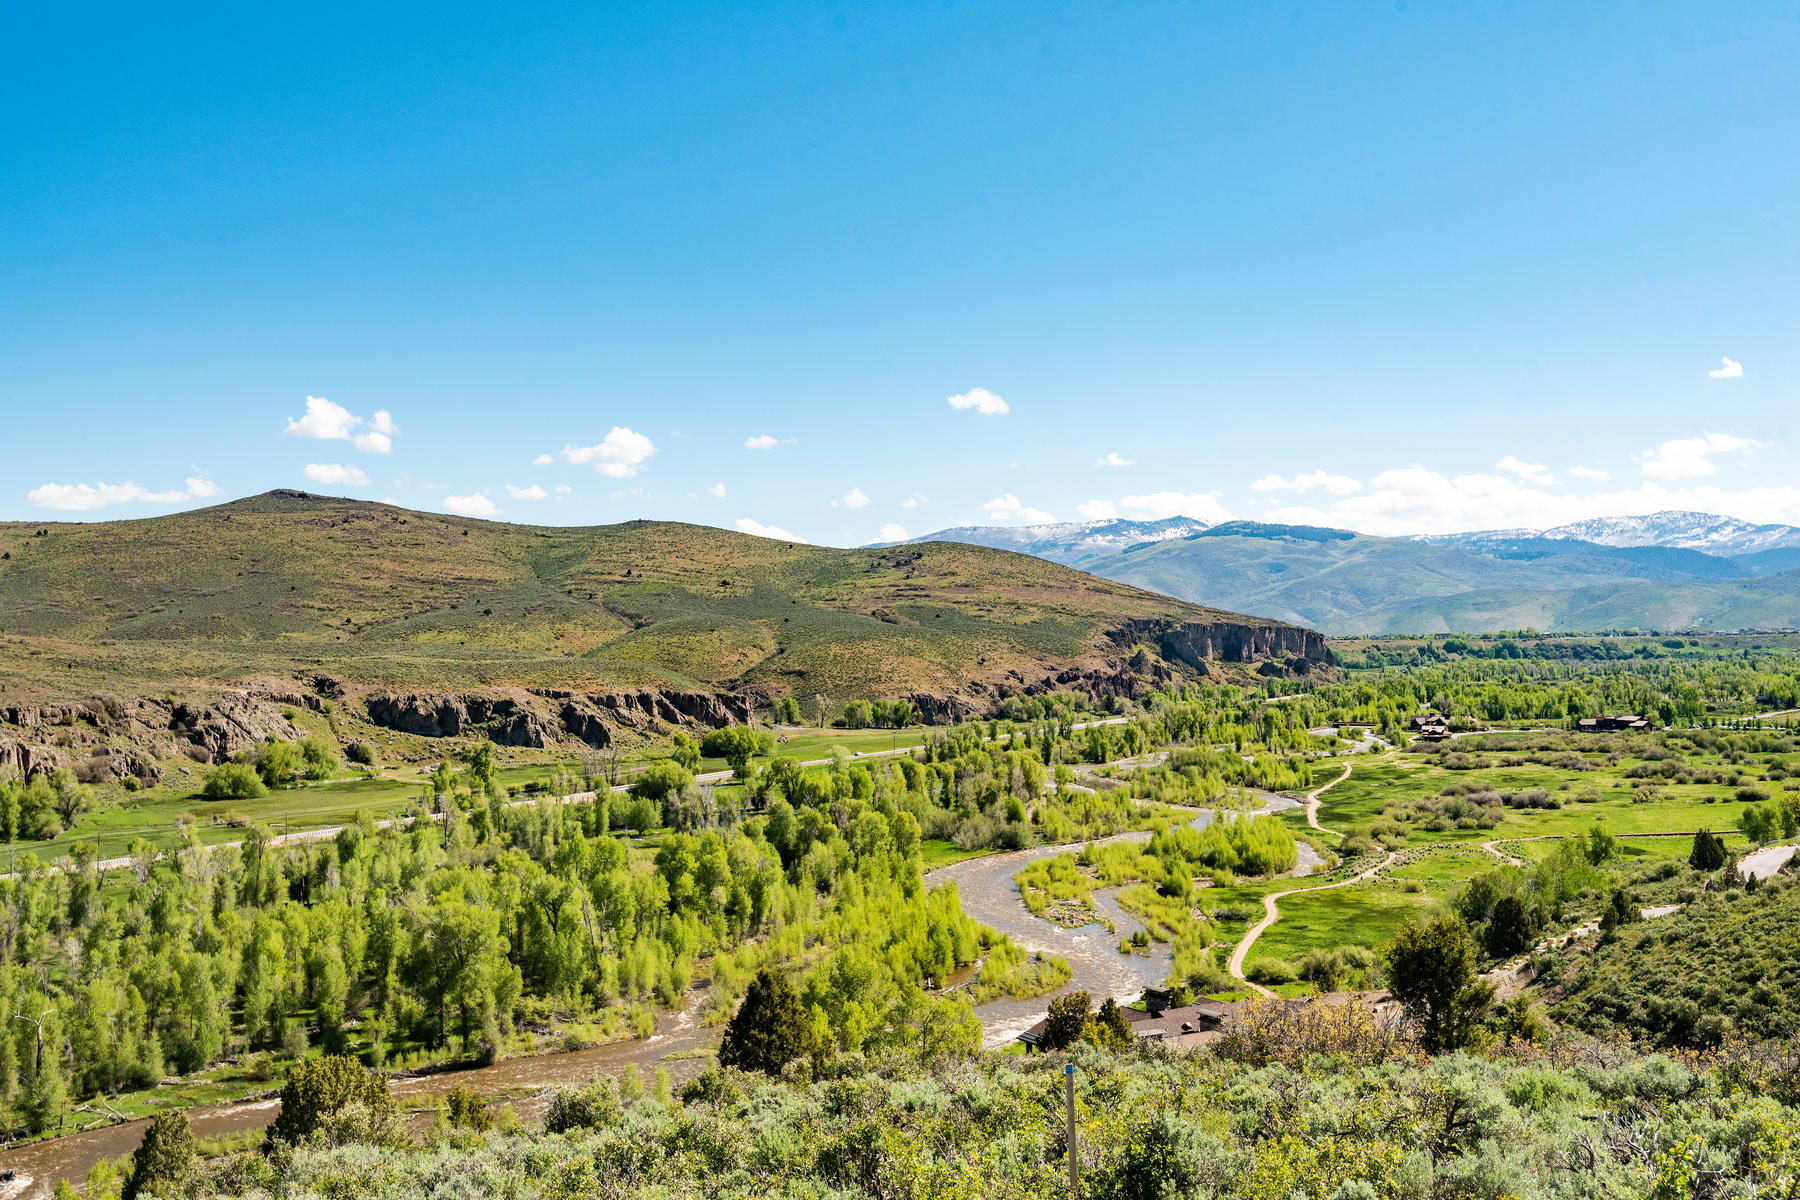 Đất đai vì Bán tại 45 Acres At Victory Ranch With Stunning Views 5725 E Rock Chuck Dr, Lot #180, Heber City, Utah 84032 Hoa Kỳ